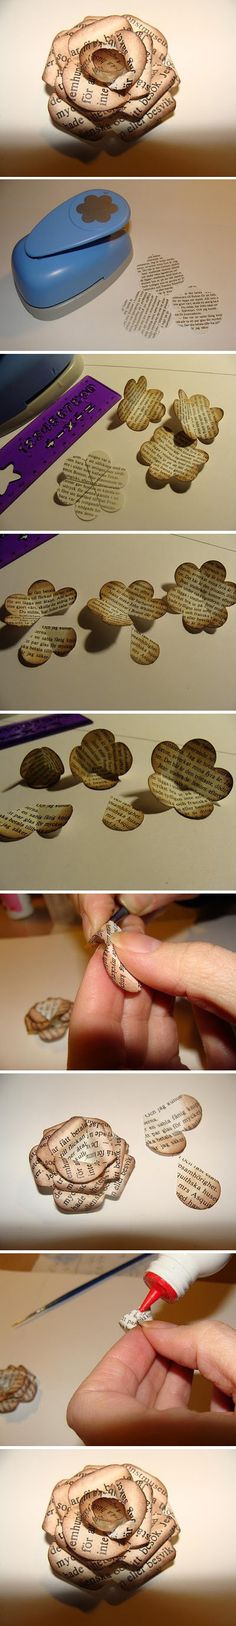 @musHo Mamuh Shyla Brussett Engel. I totally think you could corporate these also. Upcycled paper flower brooch, button or pin. It looks like the pages have been briefly toasted to get the vignette effect.  I looks fabulous, a few different paper cutting stampers could give some interesting effects. And maybe a bit of matt varnish or resin to make it last forever.